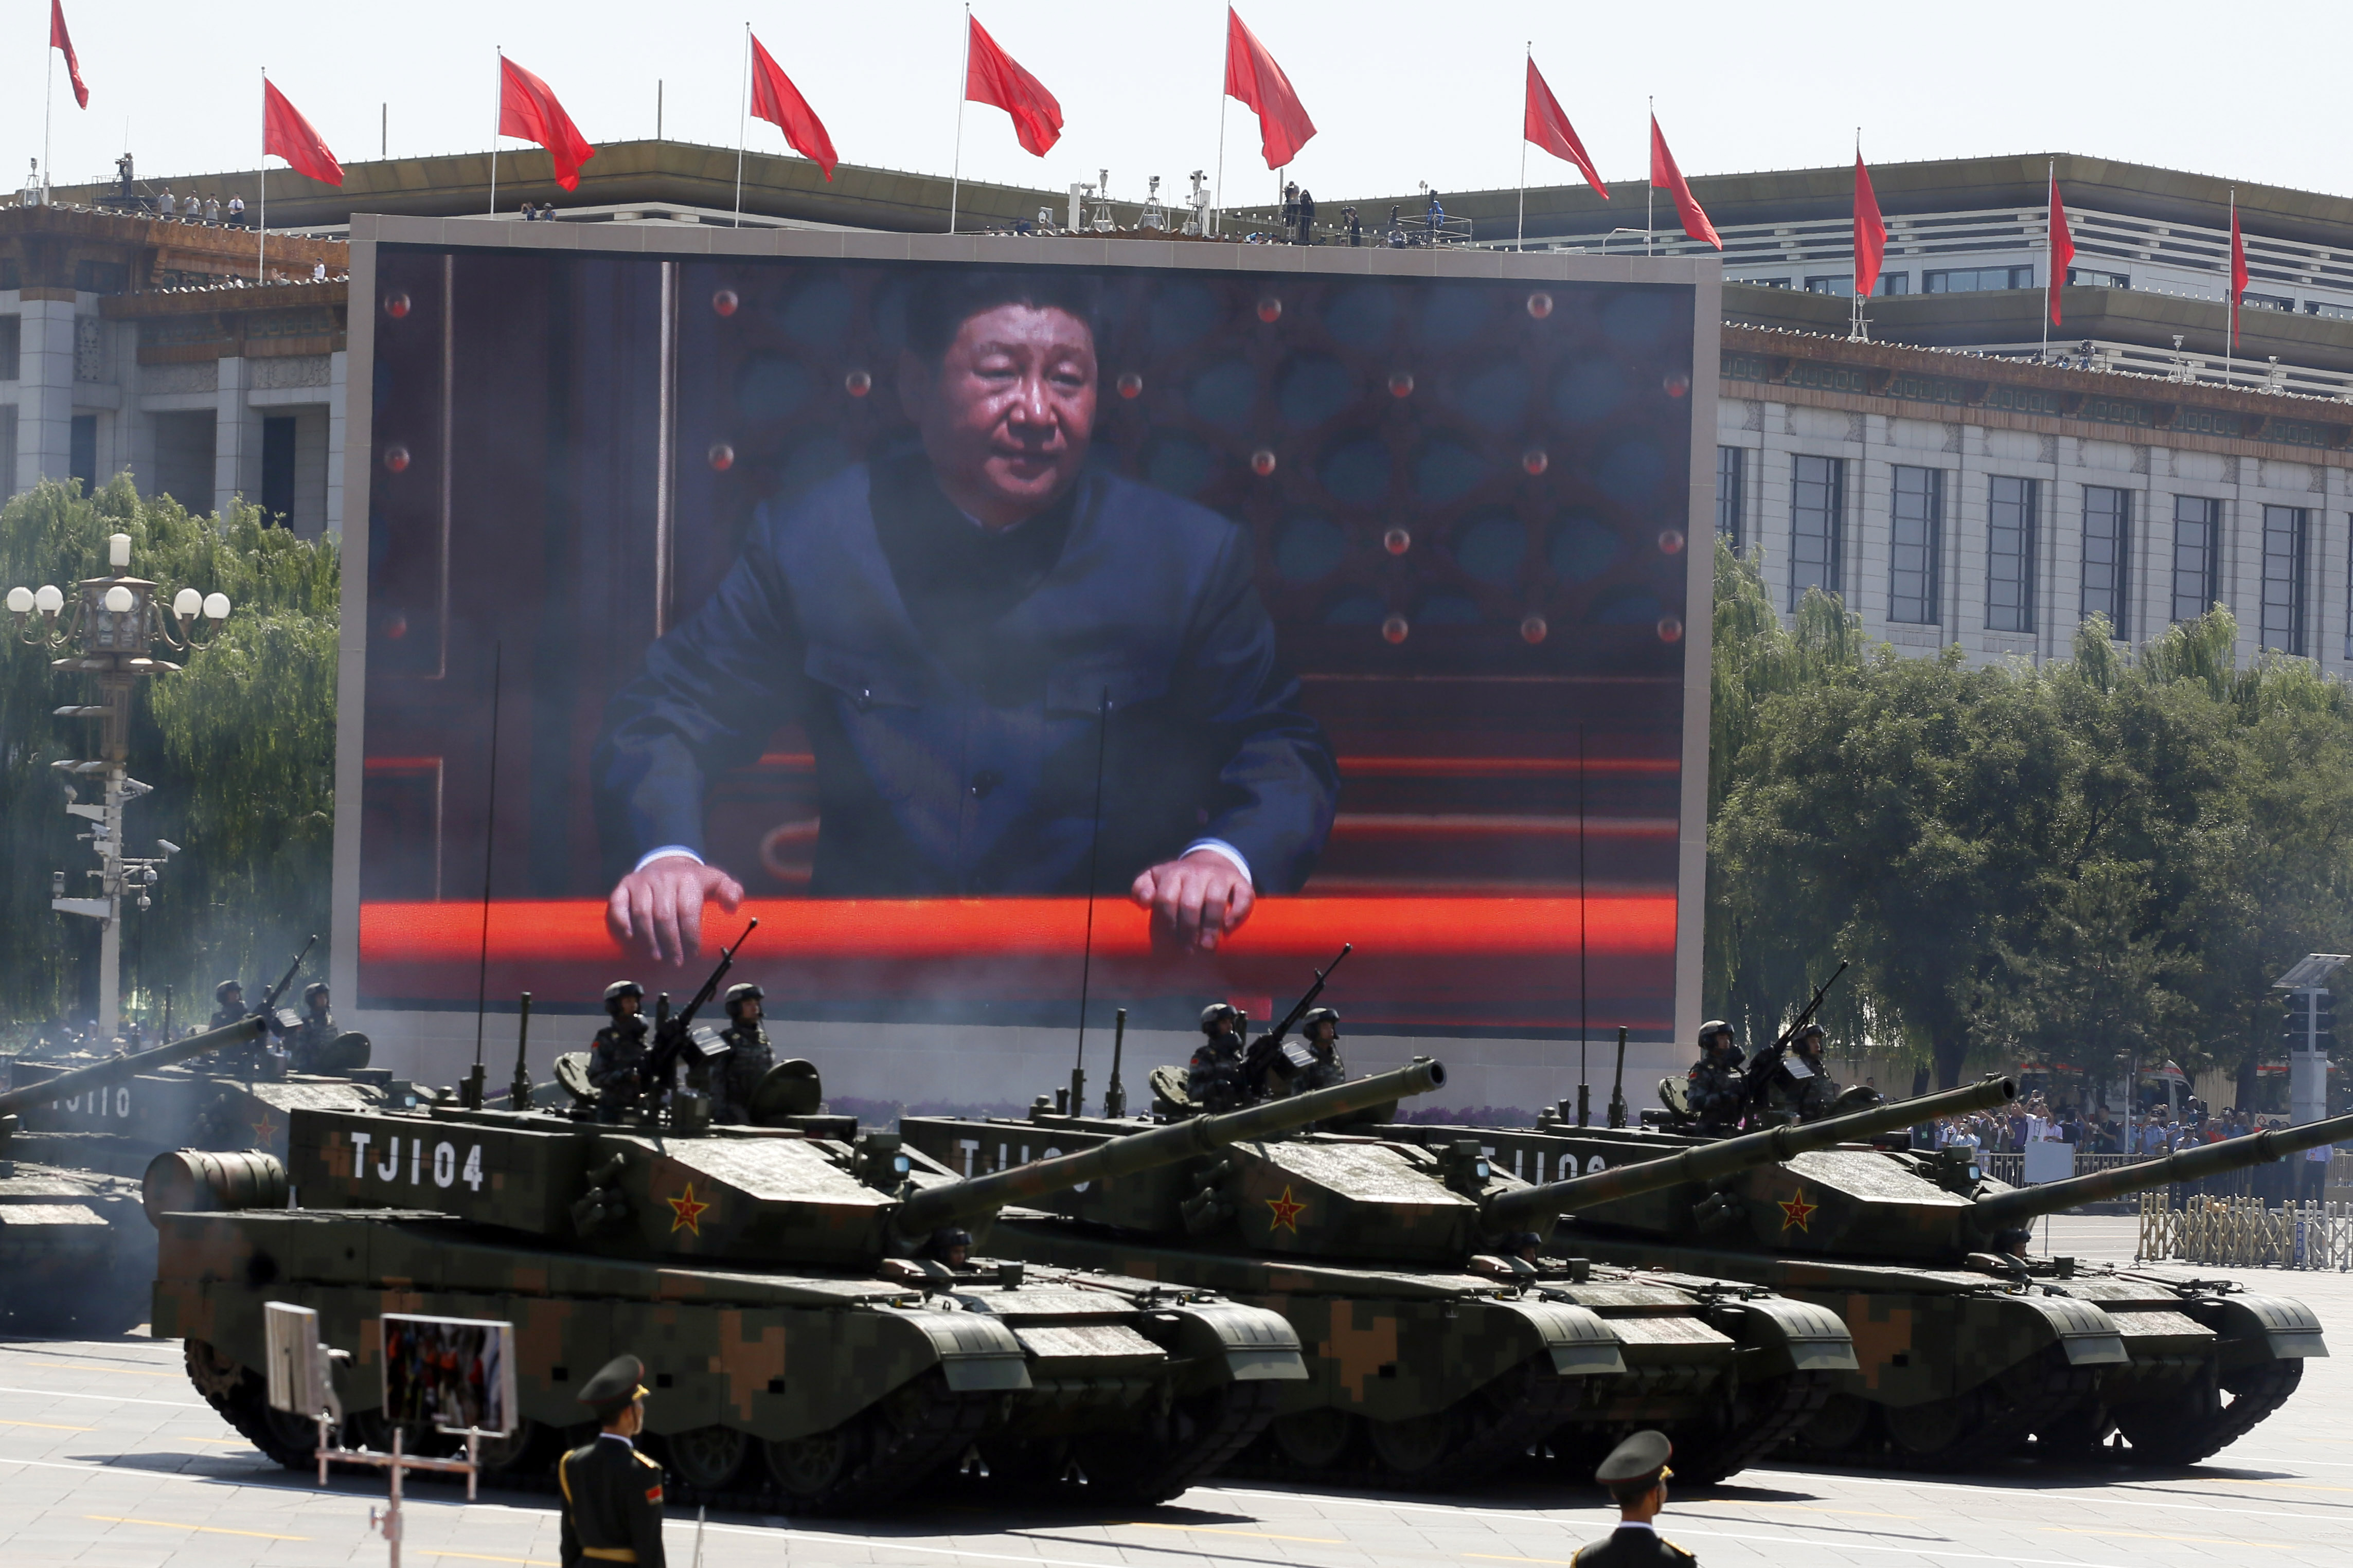 Chinese President Xi Jinping is displayed on a screen as Type 99A2 Chinese battle tanks take part in a parade commemorating the 70th anniversary of Japan's surrender during World War II held in front of Tiananmen Gate in Beijing, Thursday, Sept. 3, 2...